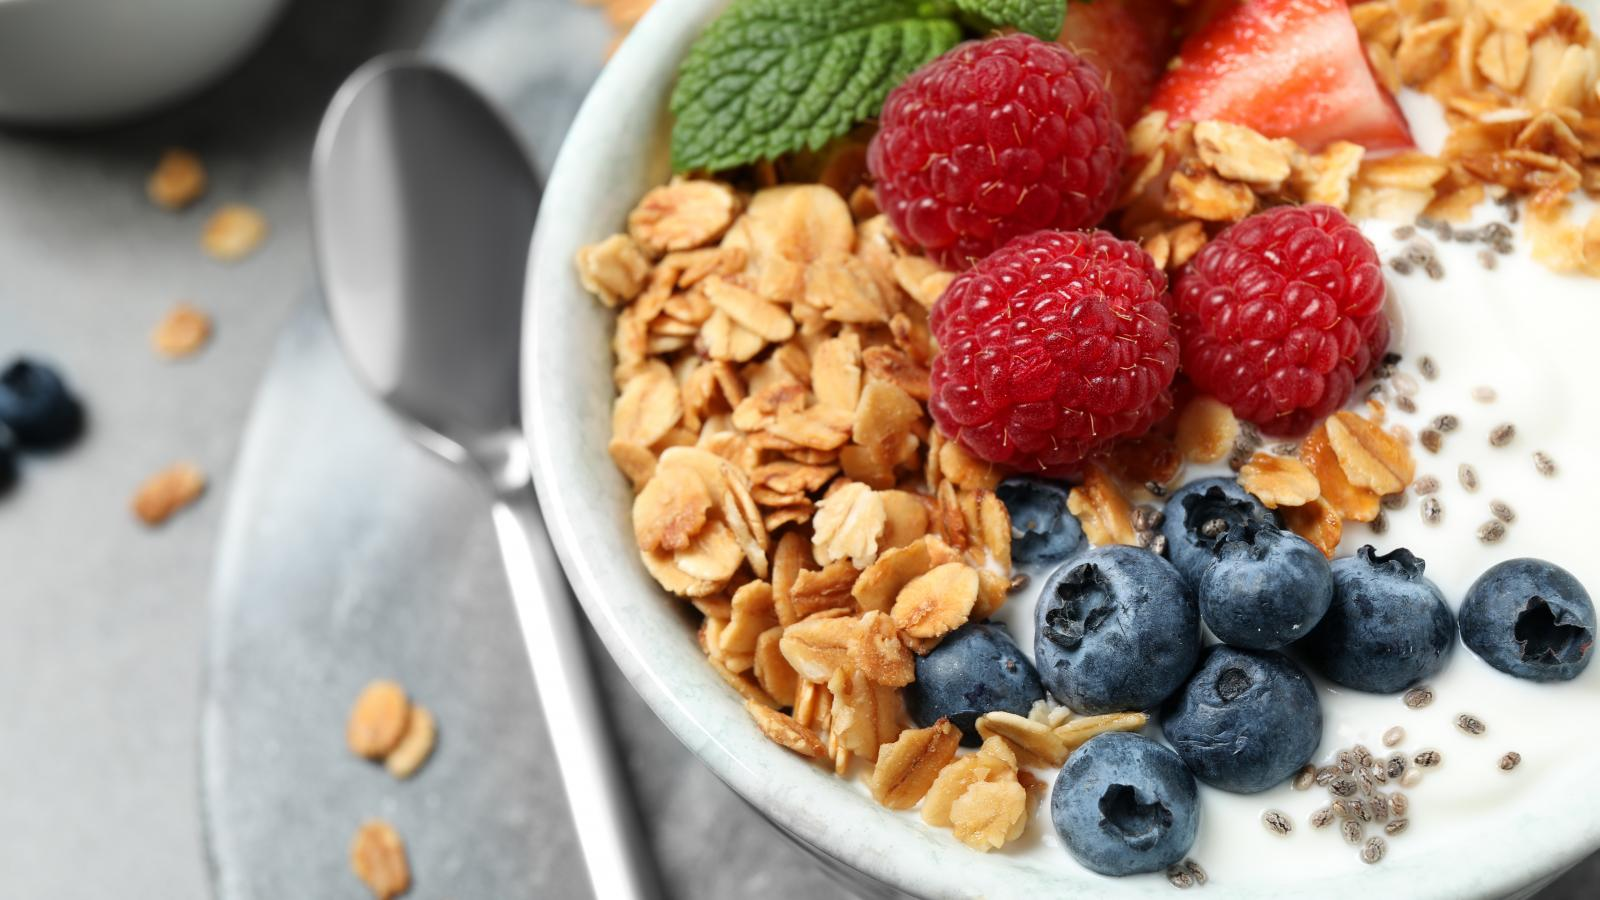 banner of Put Down the Junk and Choose a Healthy Snack Instead